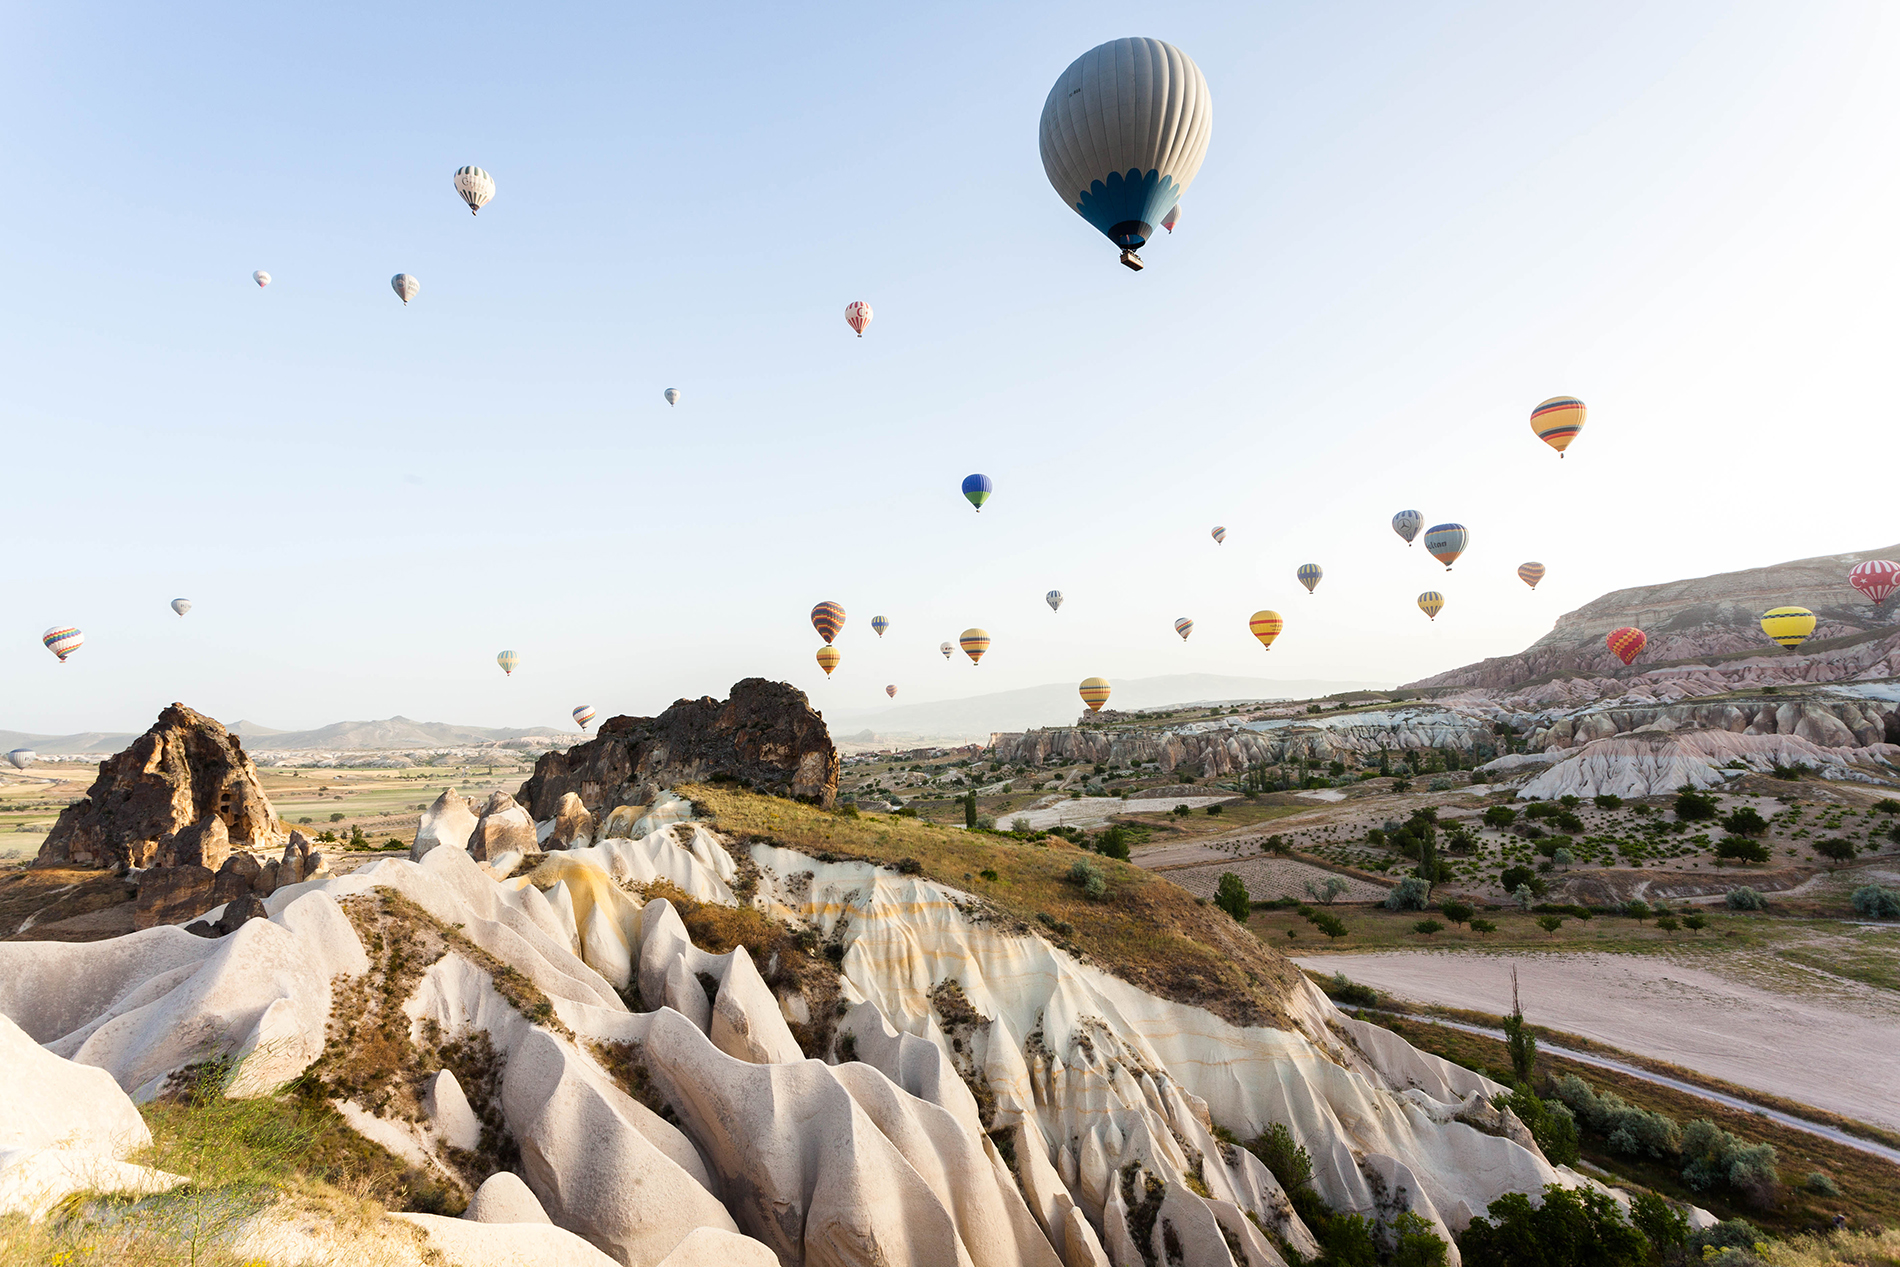 Mountain scenery with hot air balloon in the air  54070